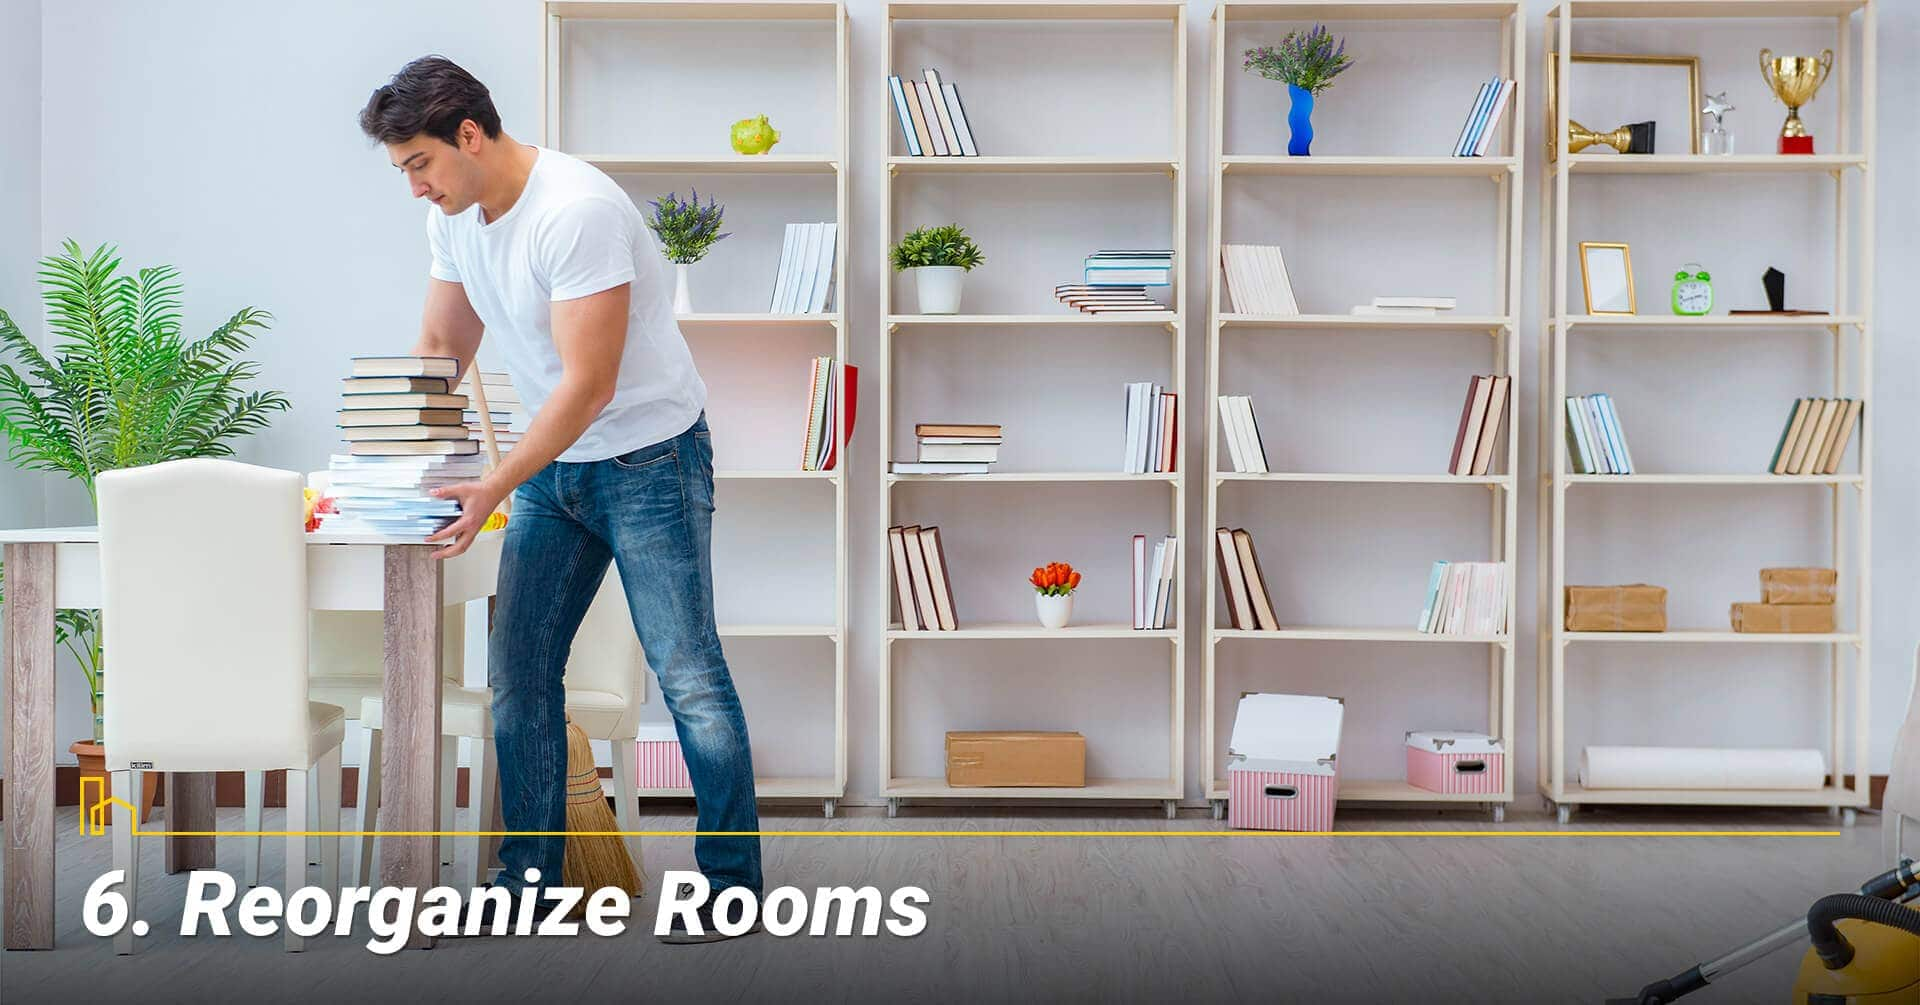 Reorganize Rooms, keep your rooms clean